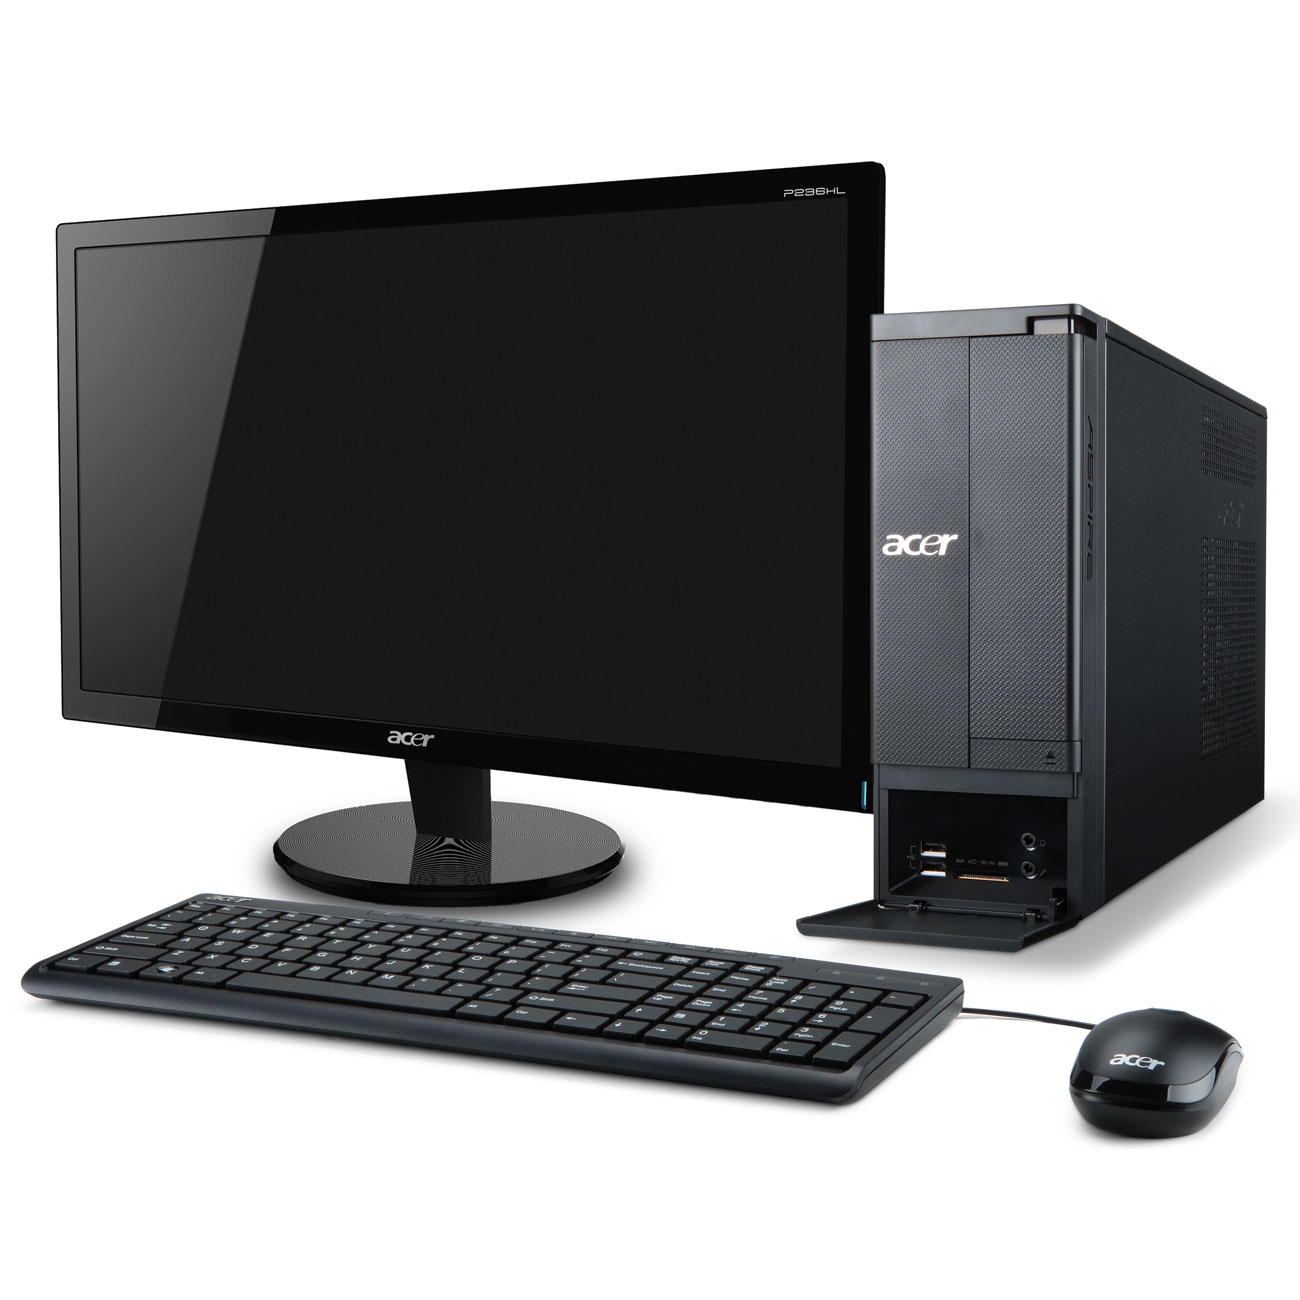 acer aspire x1430 007 ob 20 pc de bureau acer sur. Black Bedroom Furniture Sets. Home Design Ideas